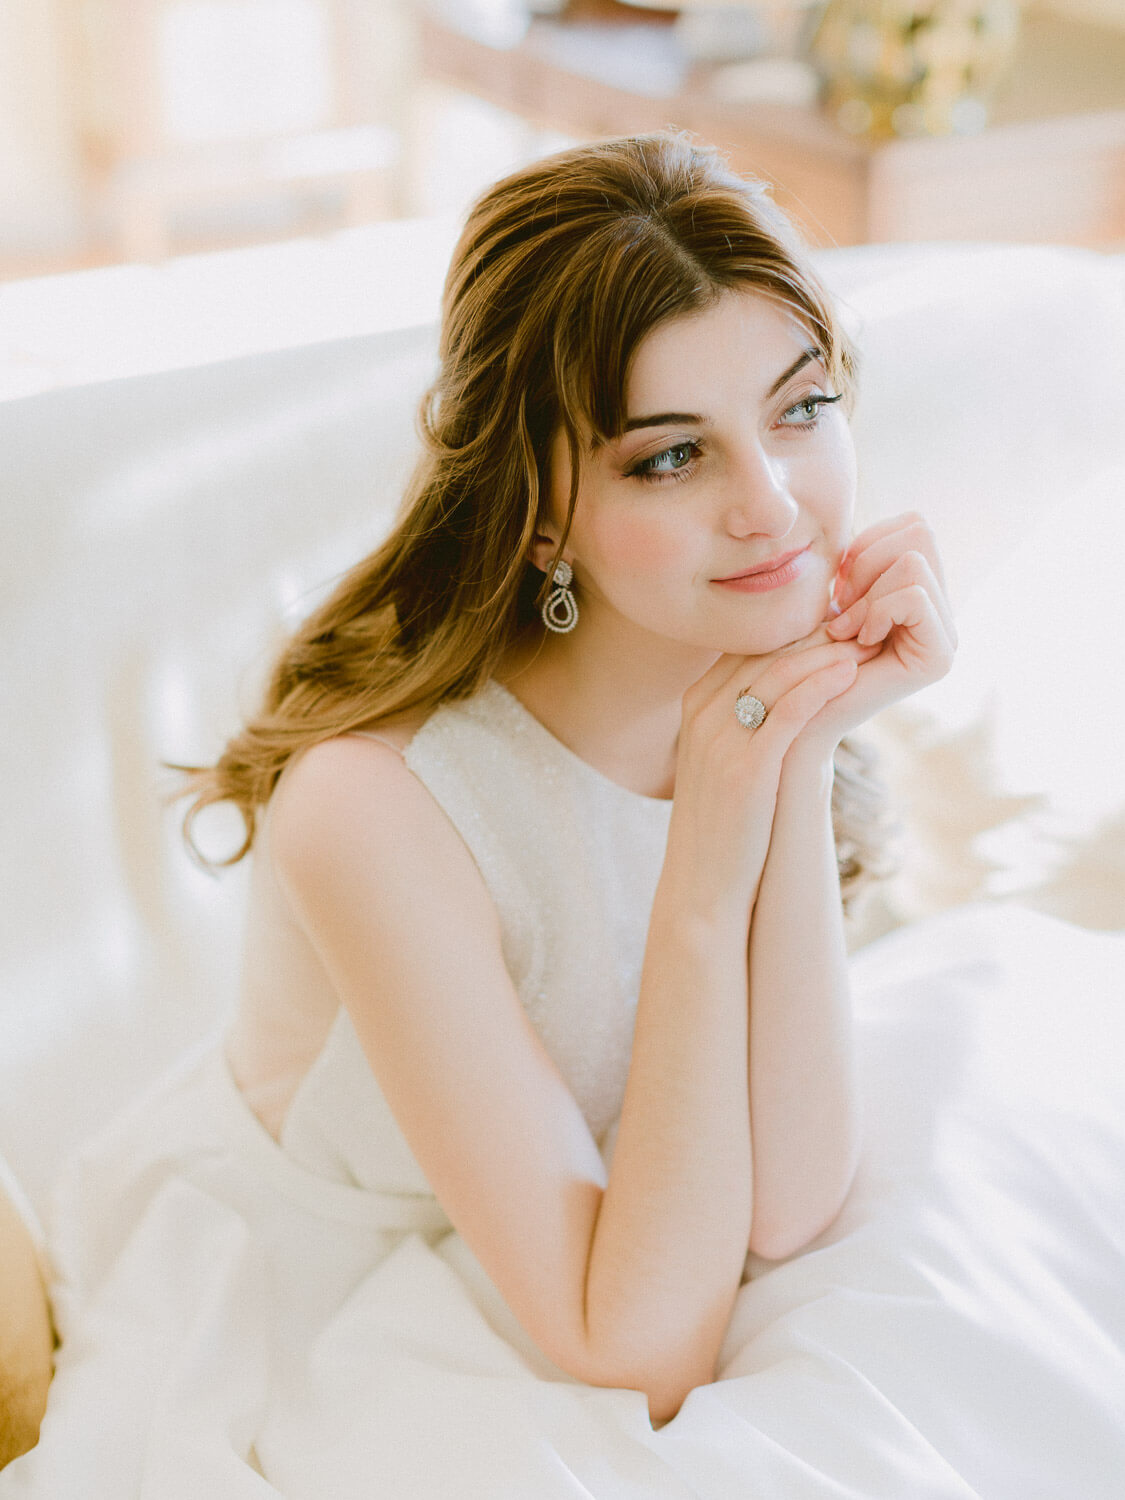 beautiful bride portrait showing glowing wedding ring and earring by Portugal Wedding Photographer